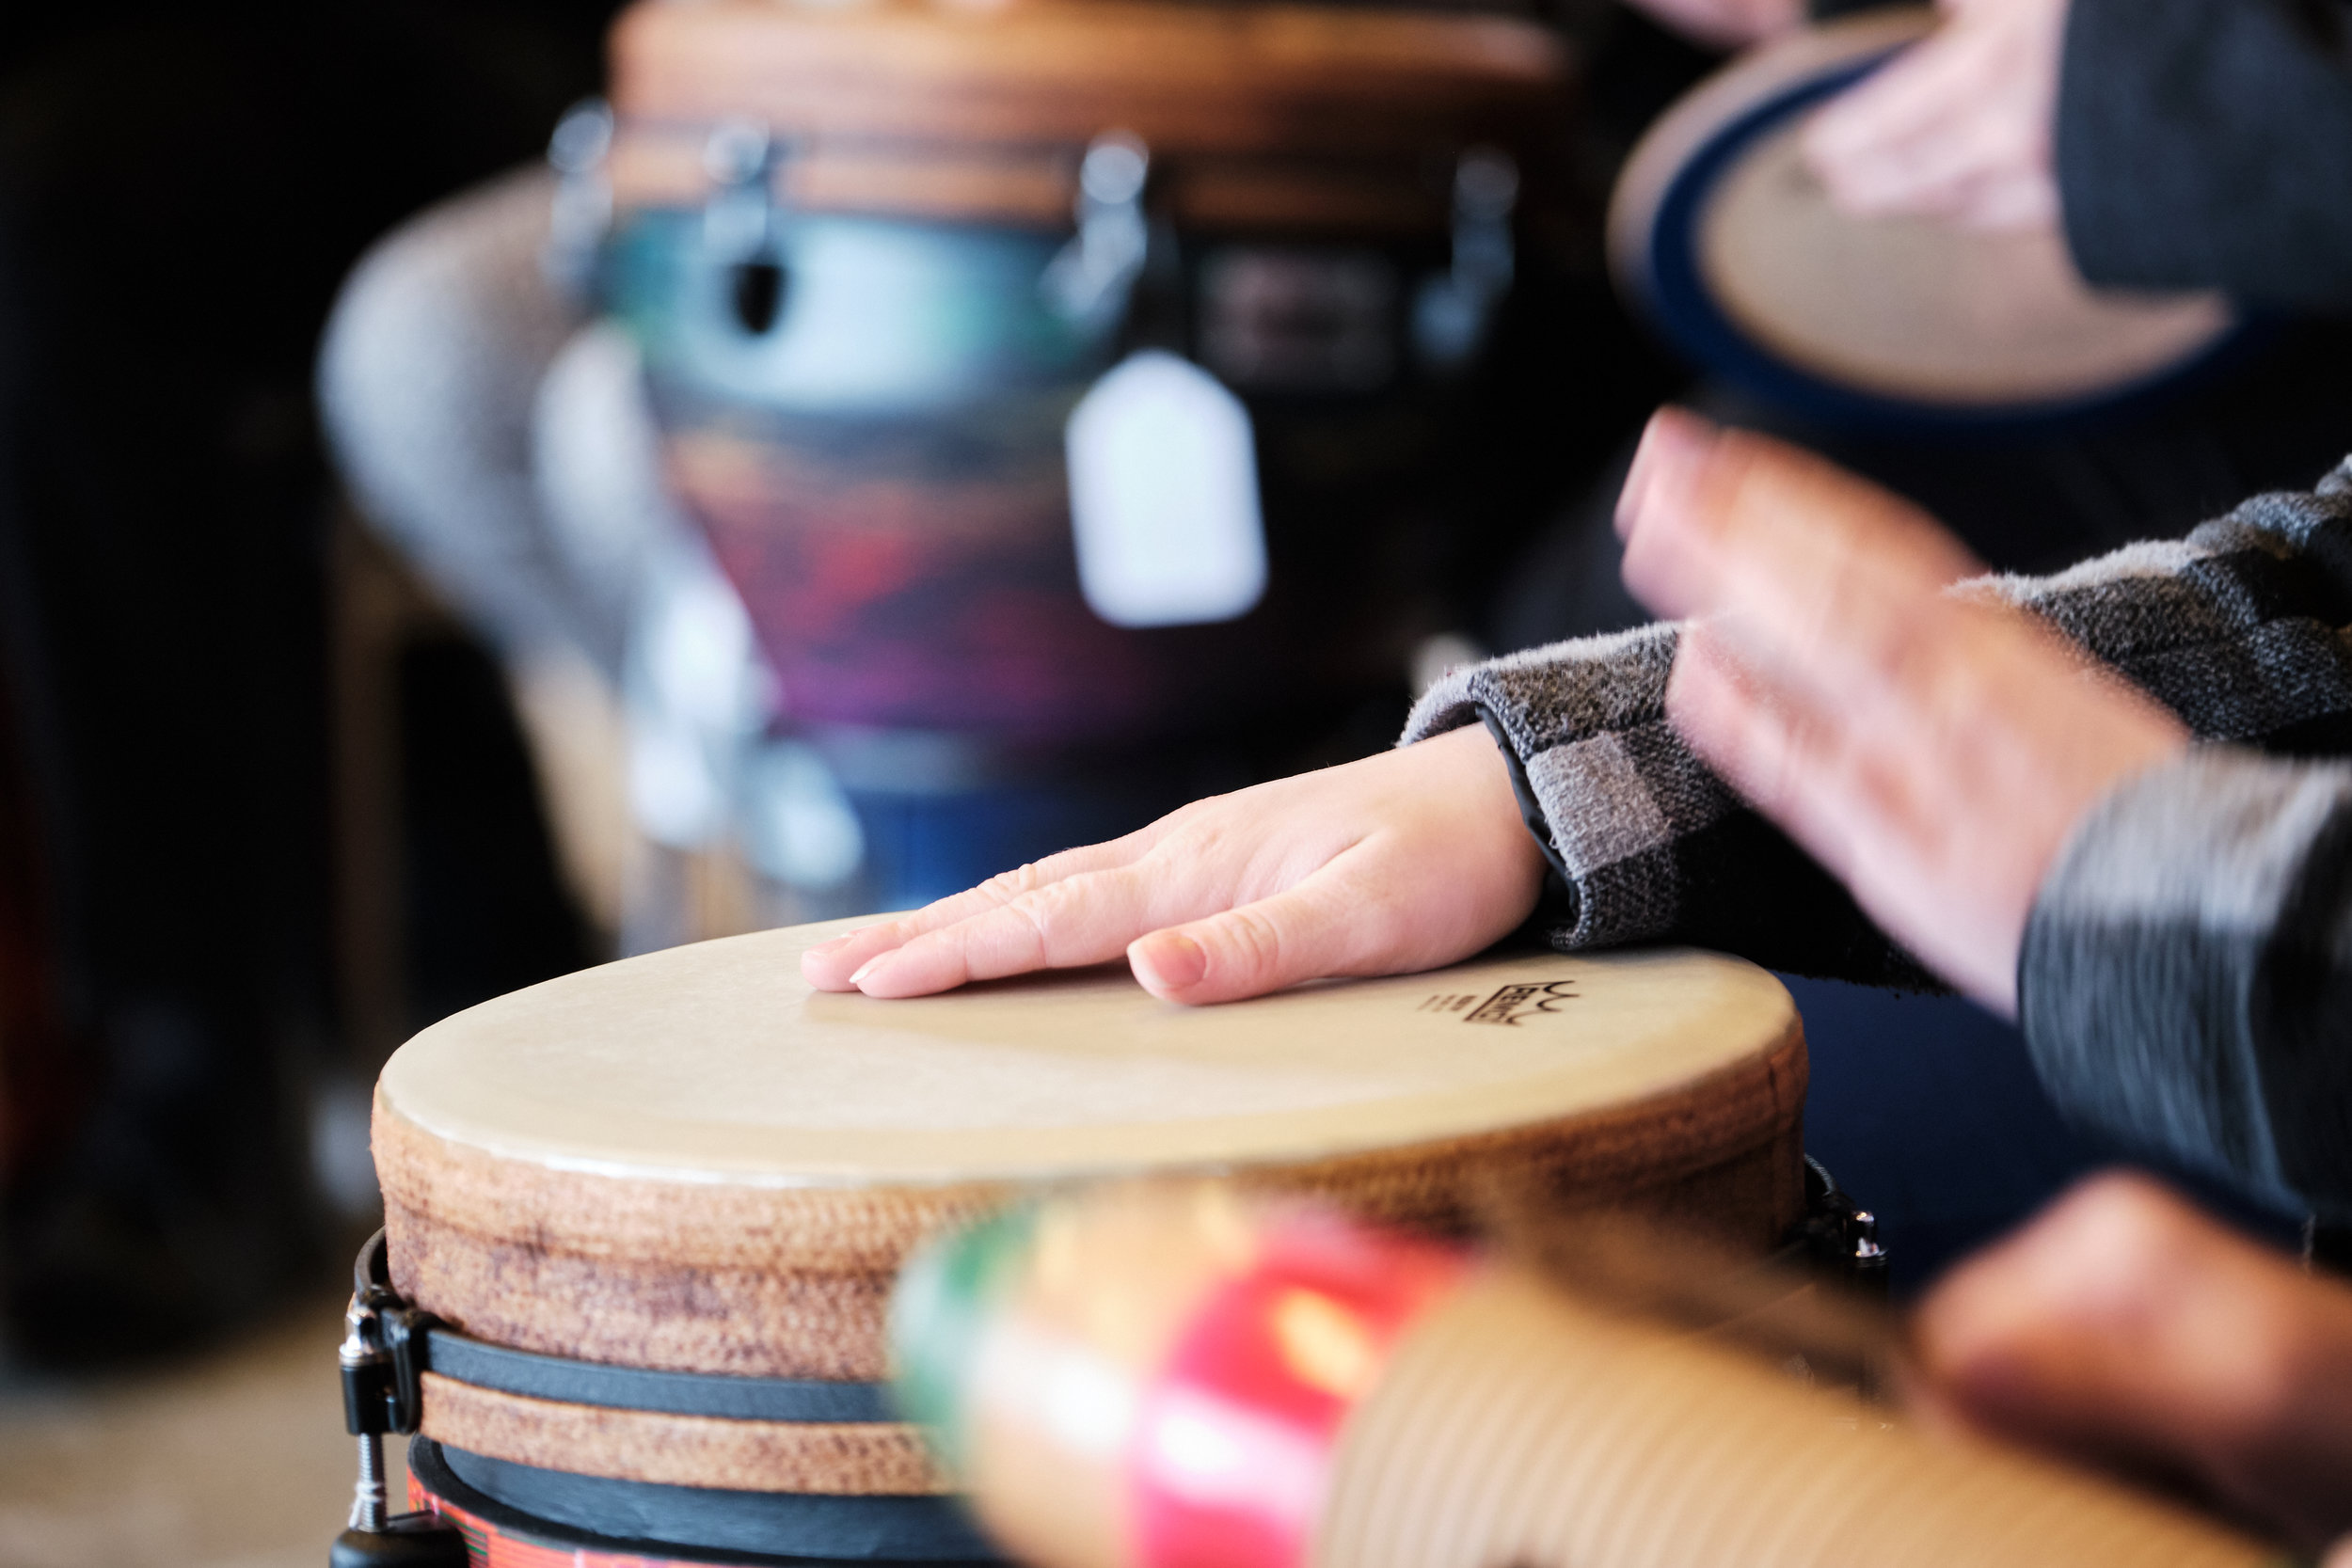 Hands drumming on world drums